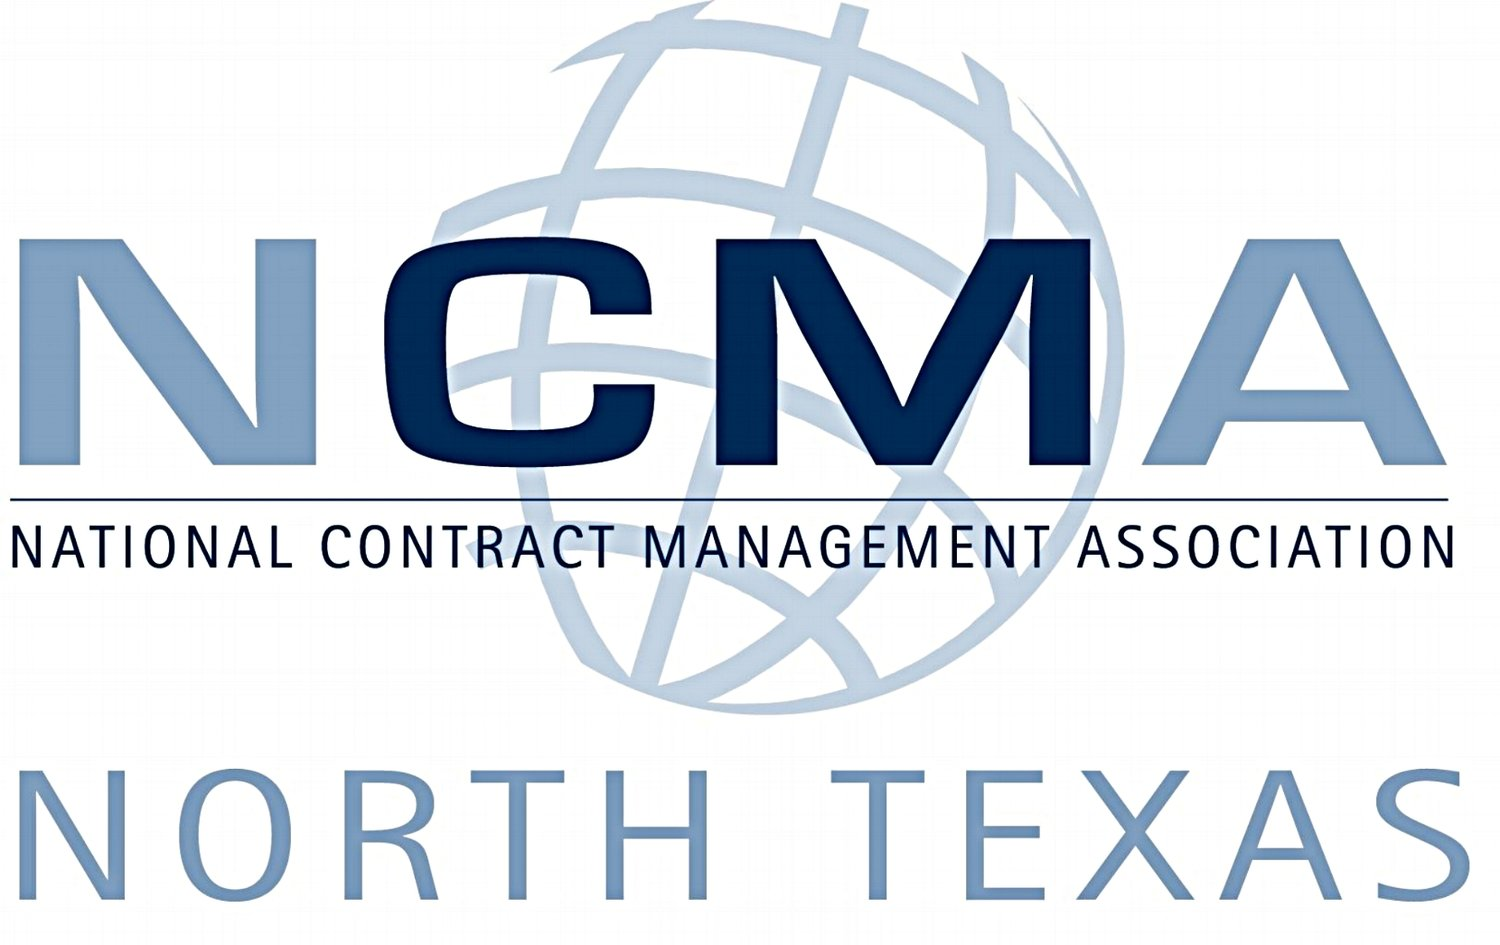 NCMA North Texas Chapter